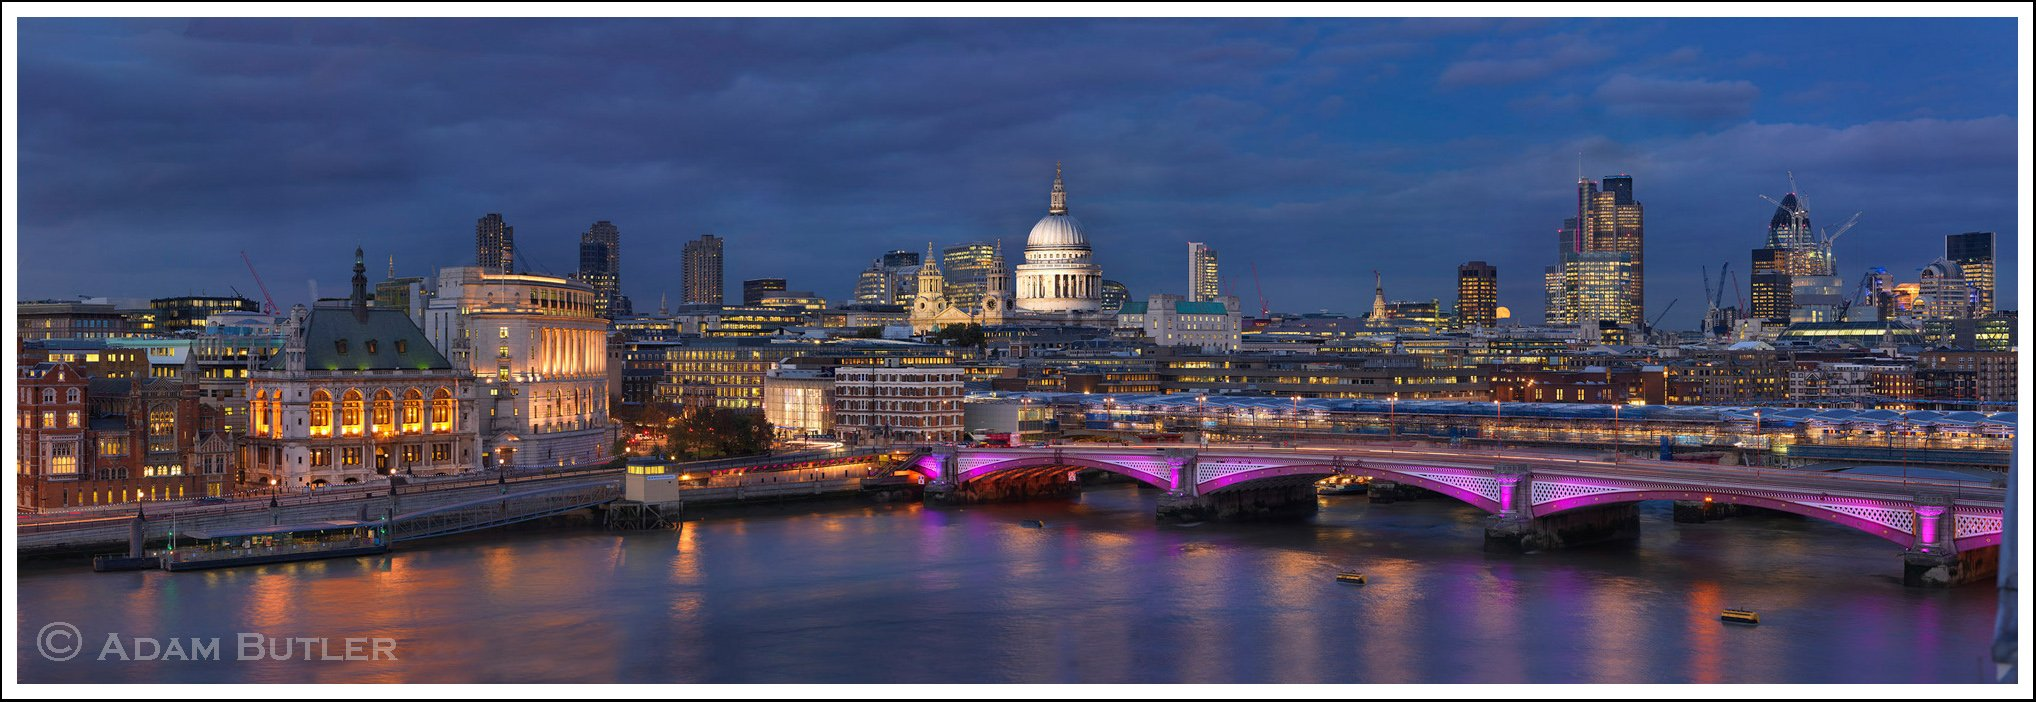 Blackfriars Bridge, St Paul's and The City of London